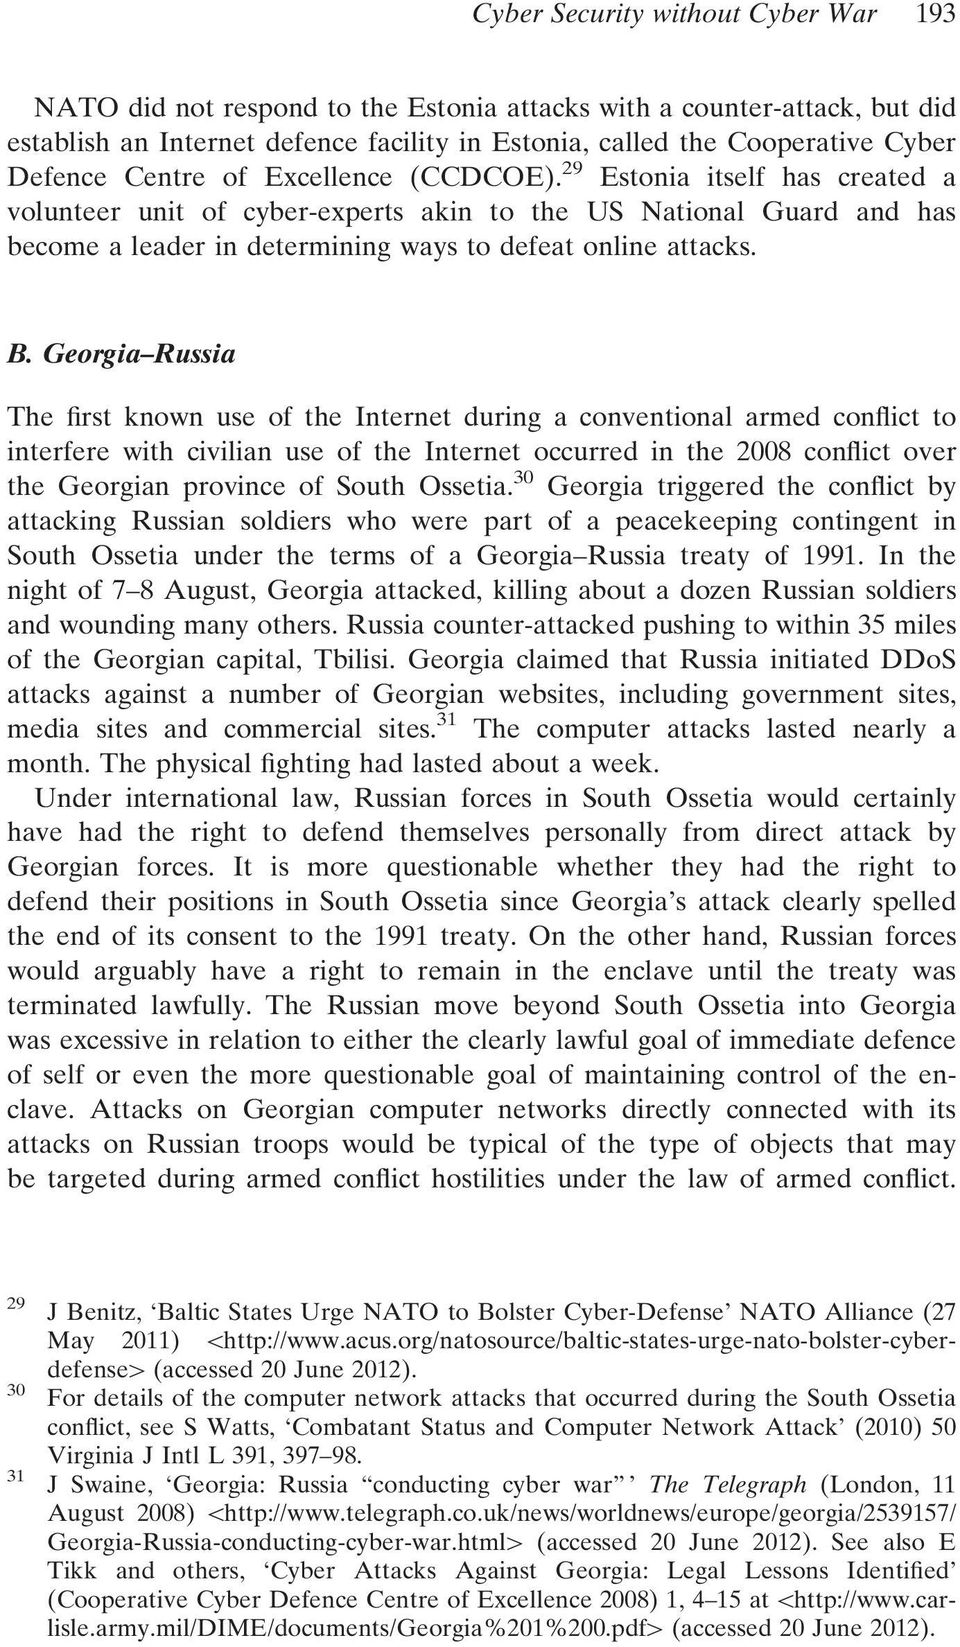 Georgia Russia The first known use of the Internet during a conventional armed conflict to interfere with civilian use of the Internet occurred in the 2008 conflict over the Georgian province of